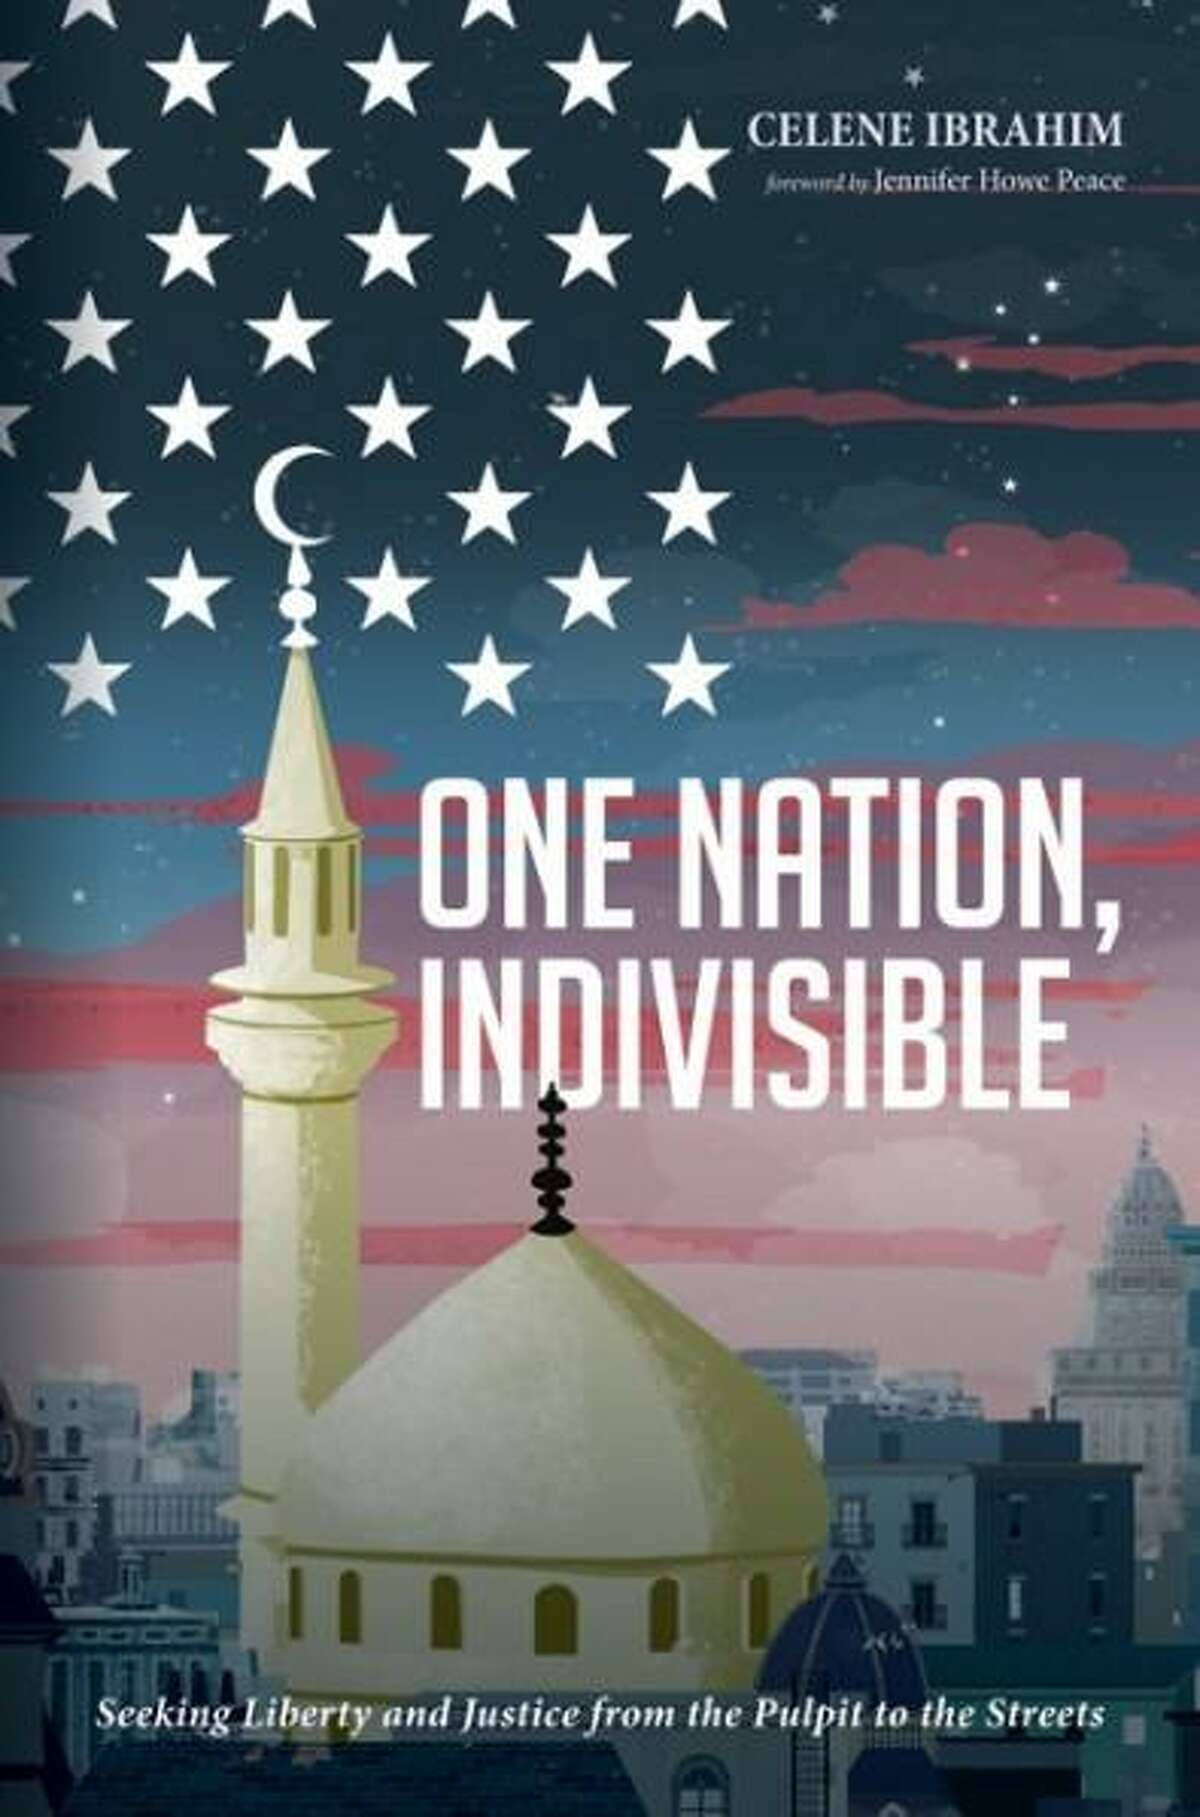 """""""One Nation, Indivisible"""" by Celene Ibrahim, Muslim chaplain at Tufts University, will be the focus of her June 15 program at Mercy by the Sea in Madison."""